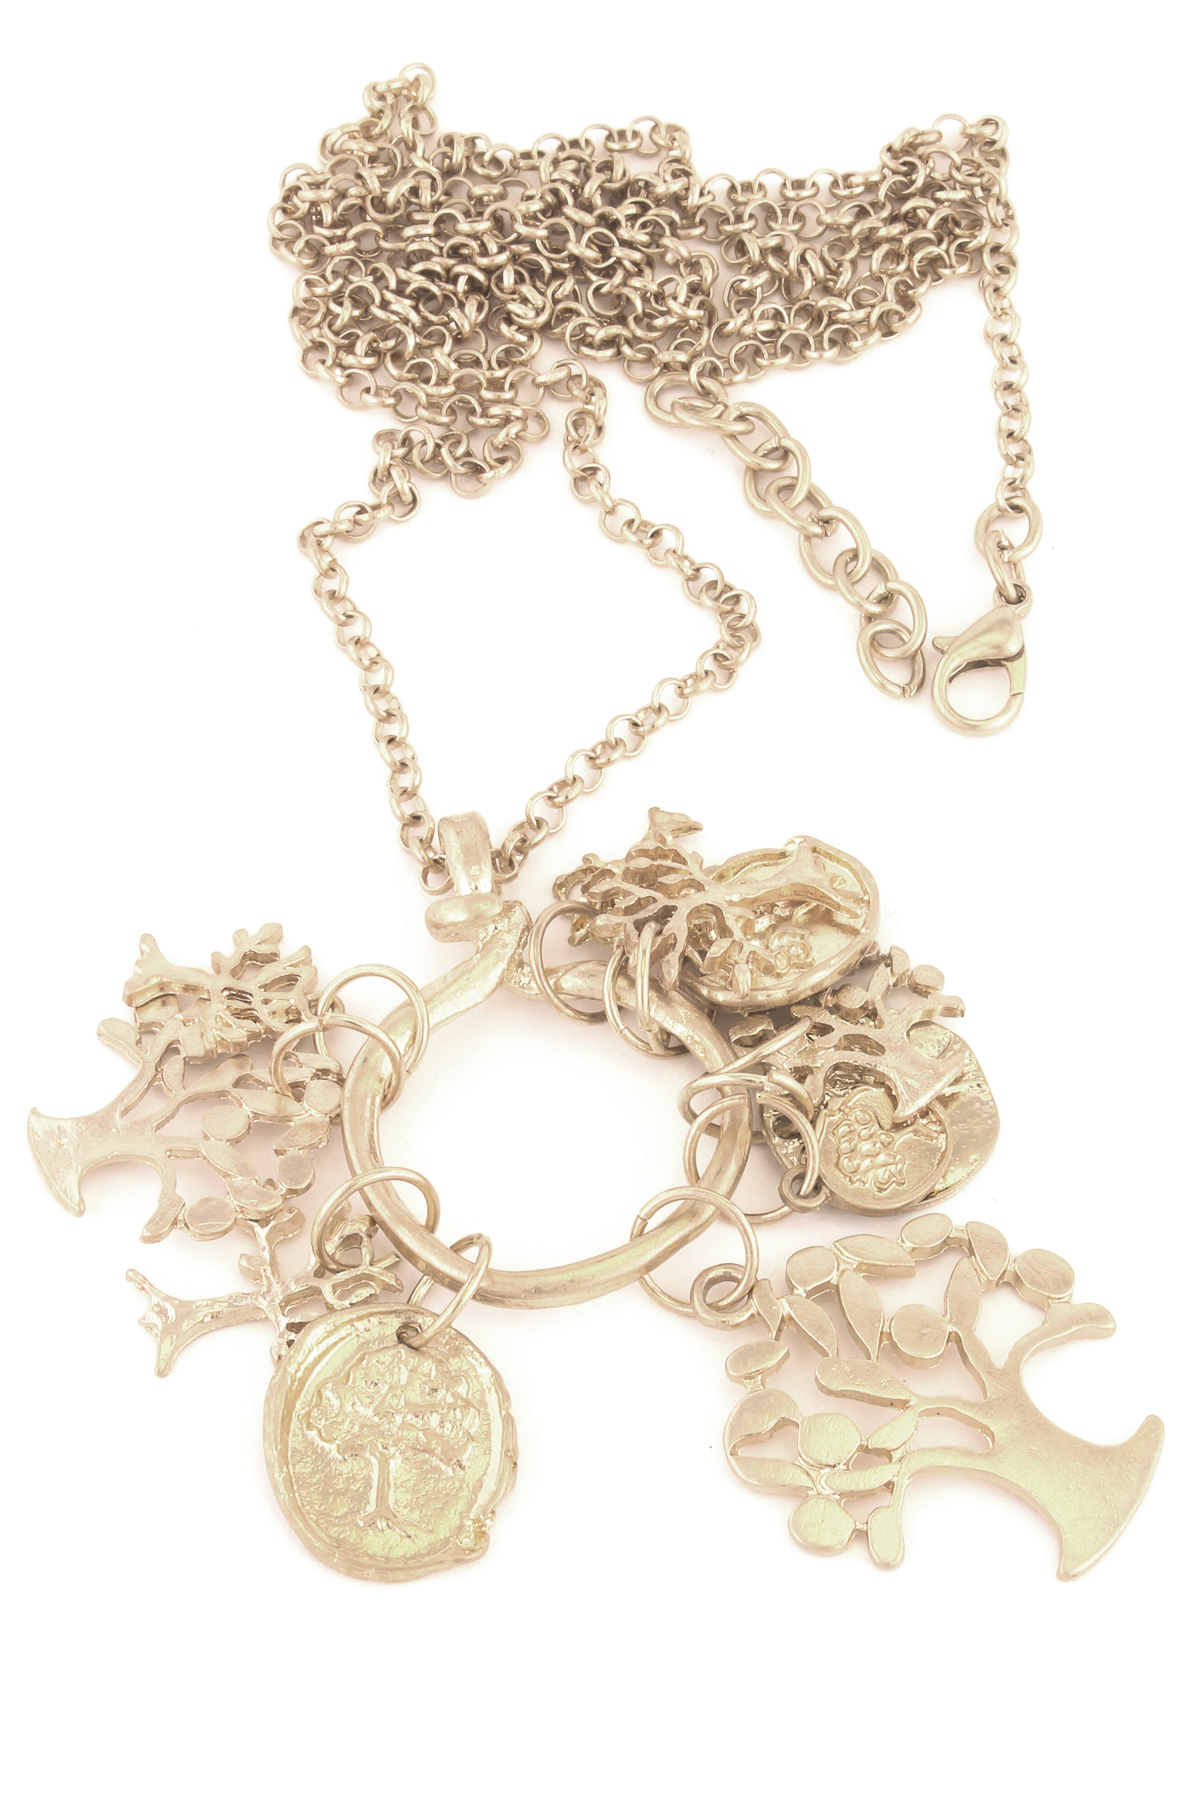 assorted charms chain link necklace necklaces